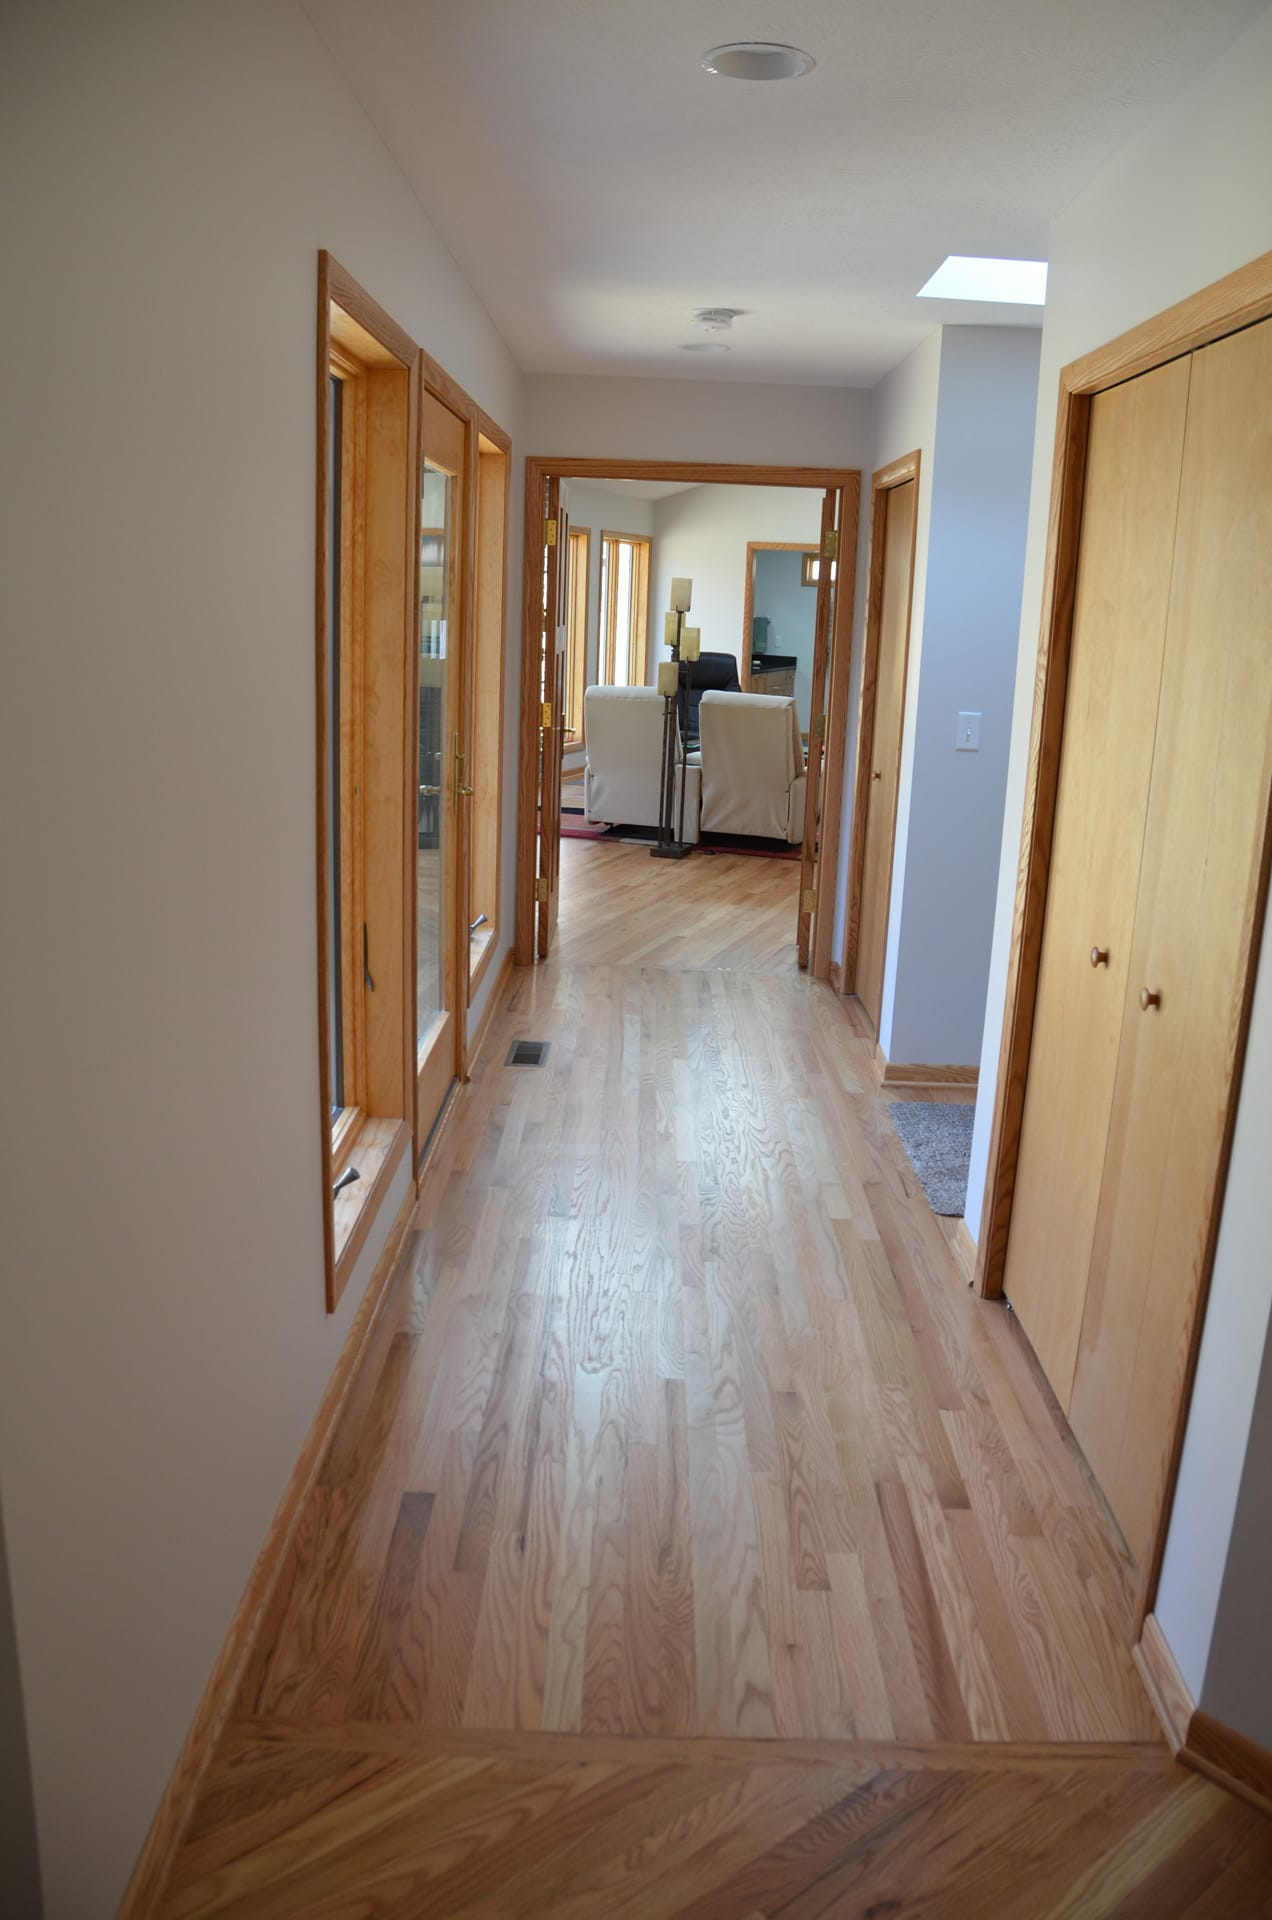 Hallway connecting existing house to addition